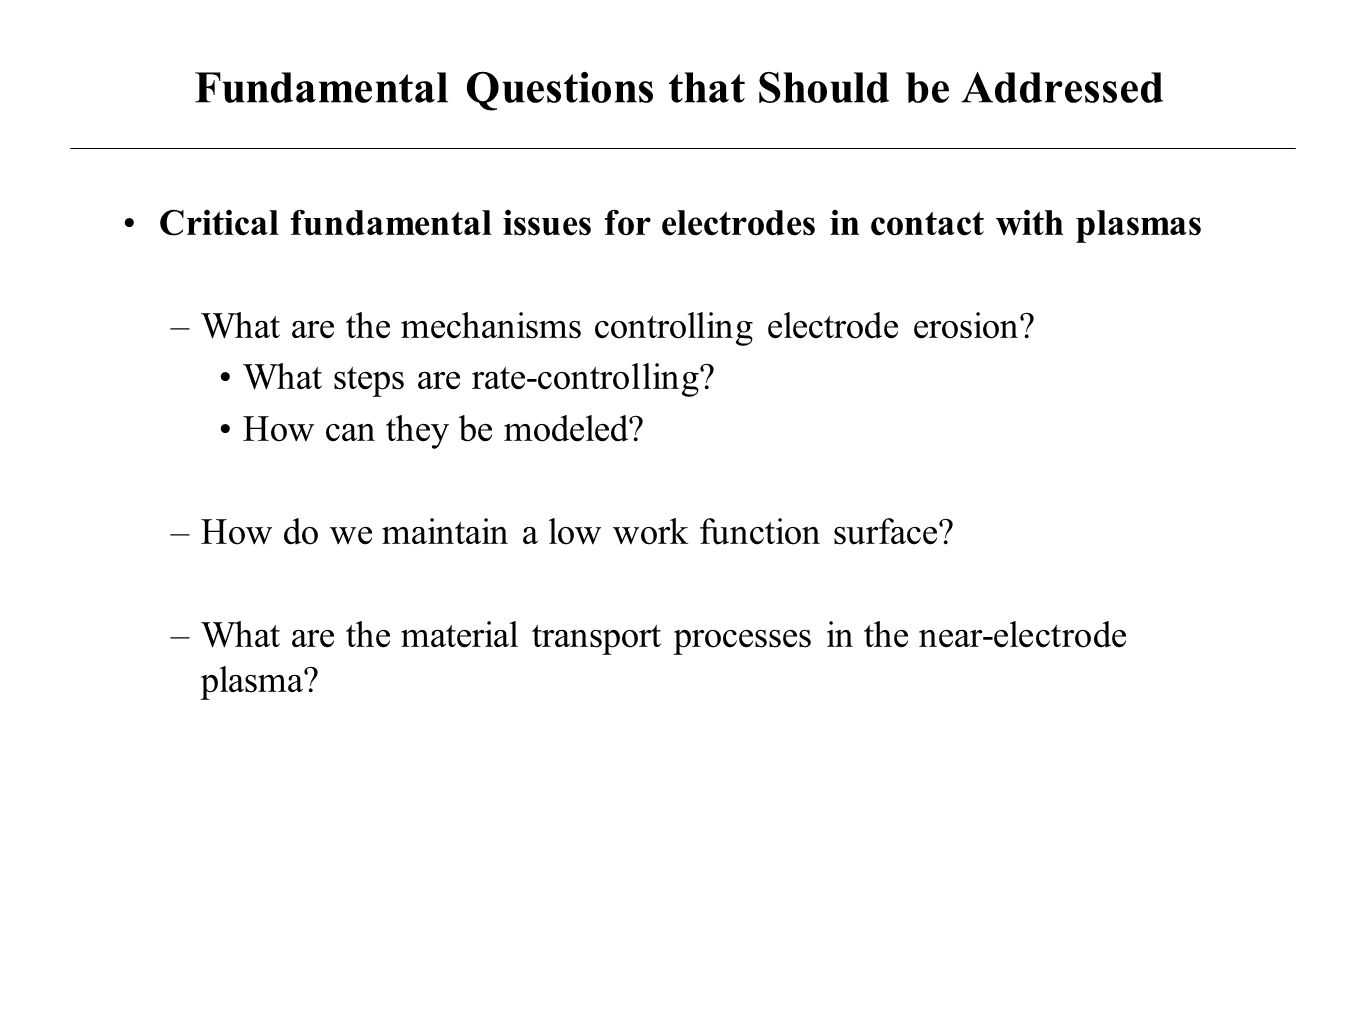 Fundamental Questions that Should be Addressed Critical fundamental issues for electrodes in contact with plasmas –What are the mechanisms controlling